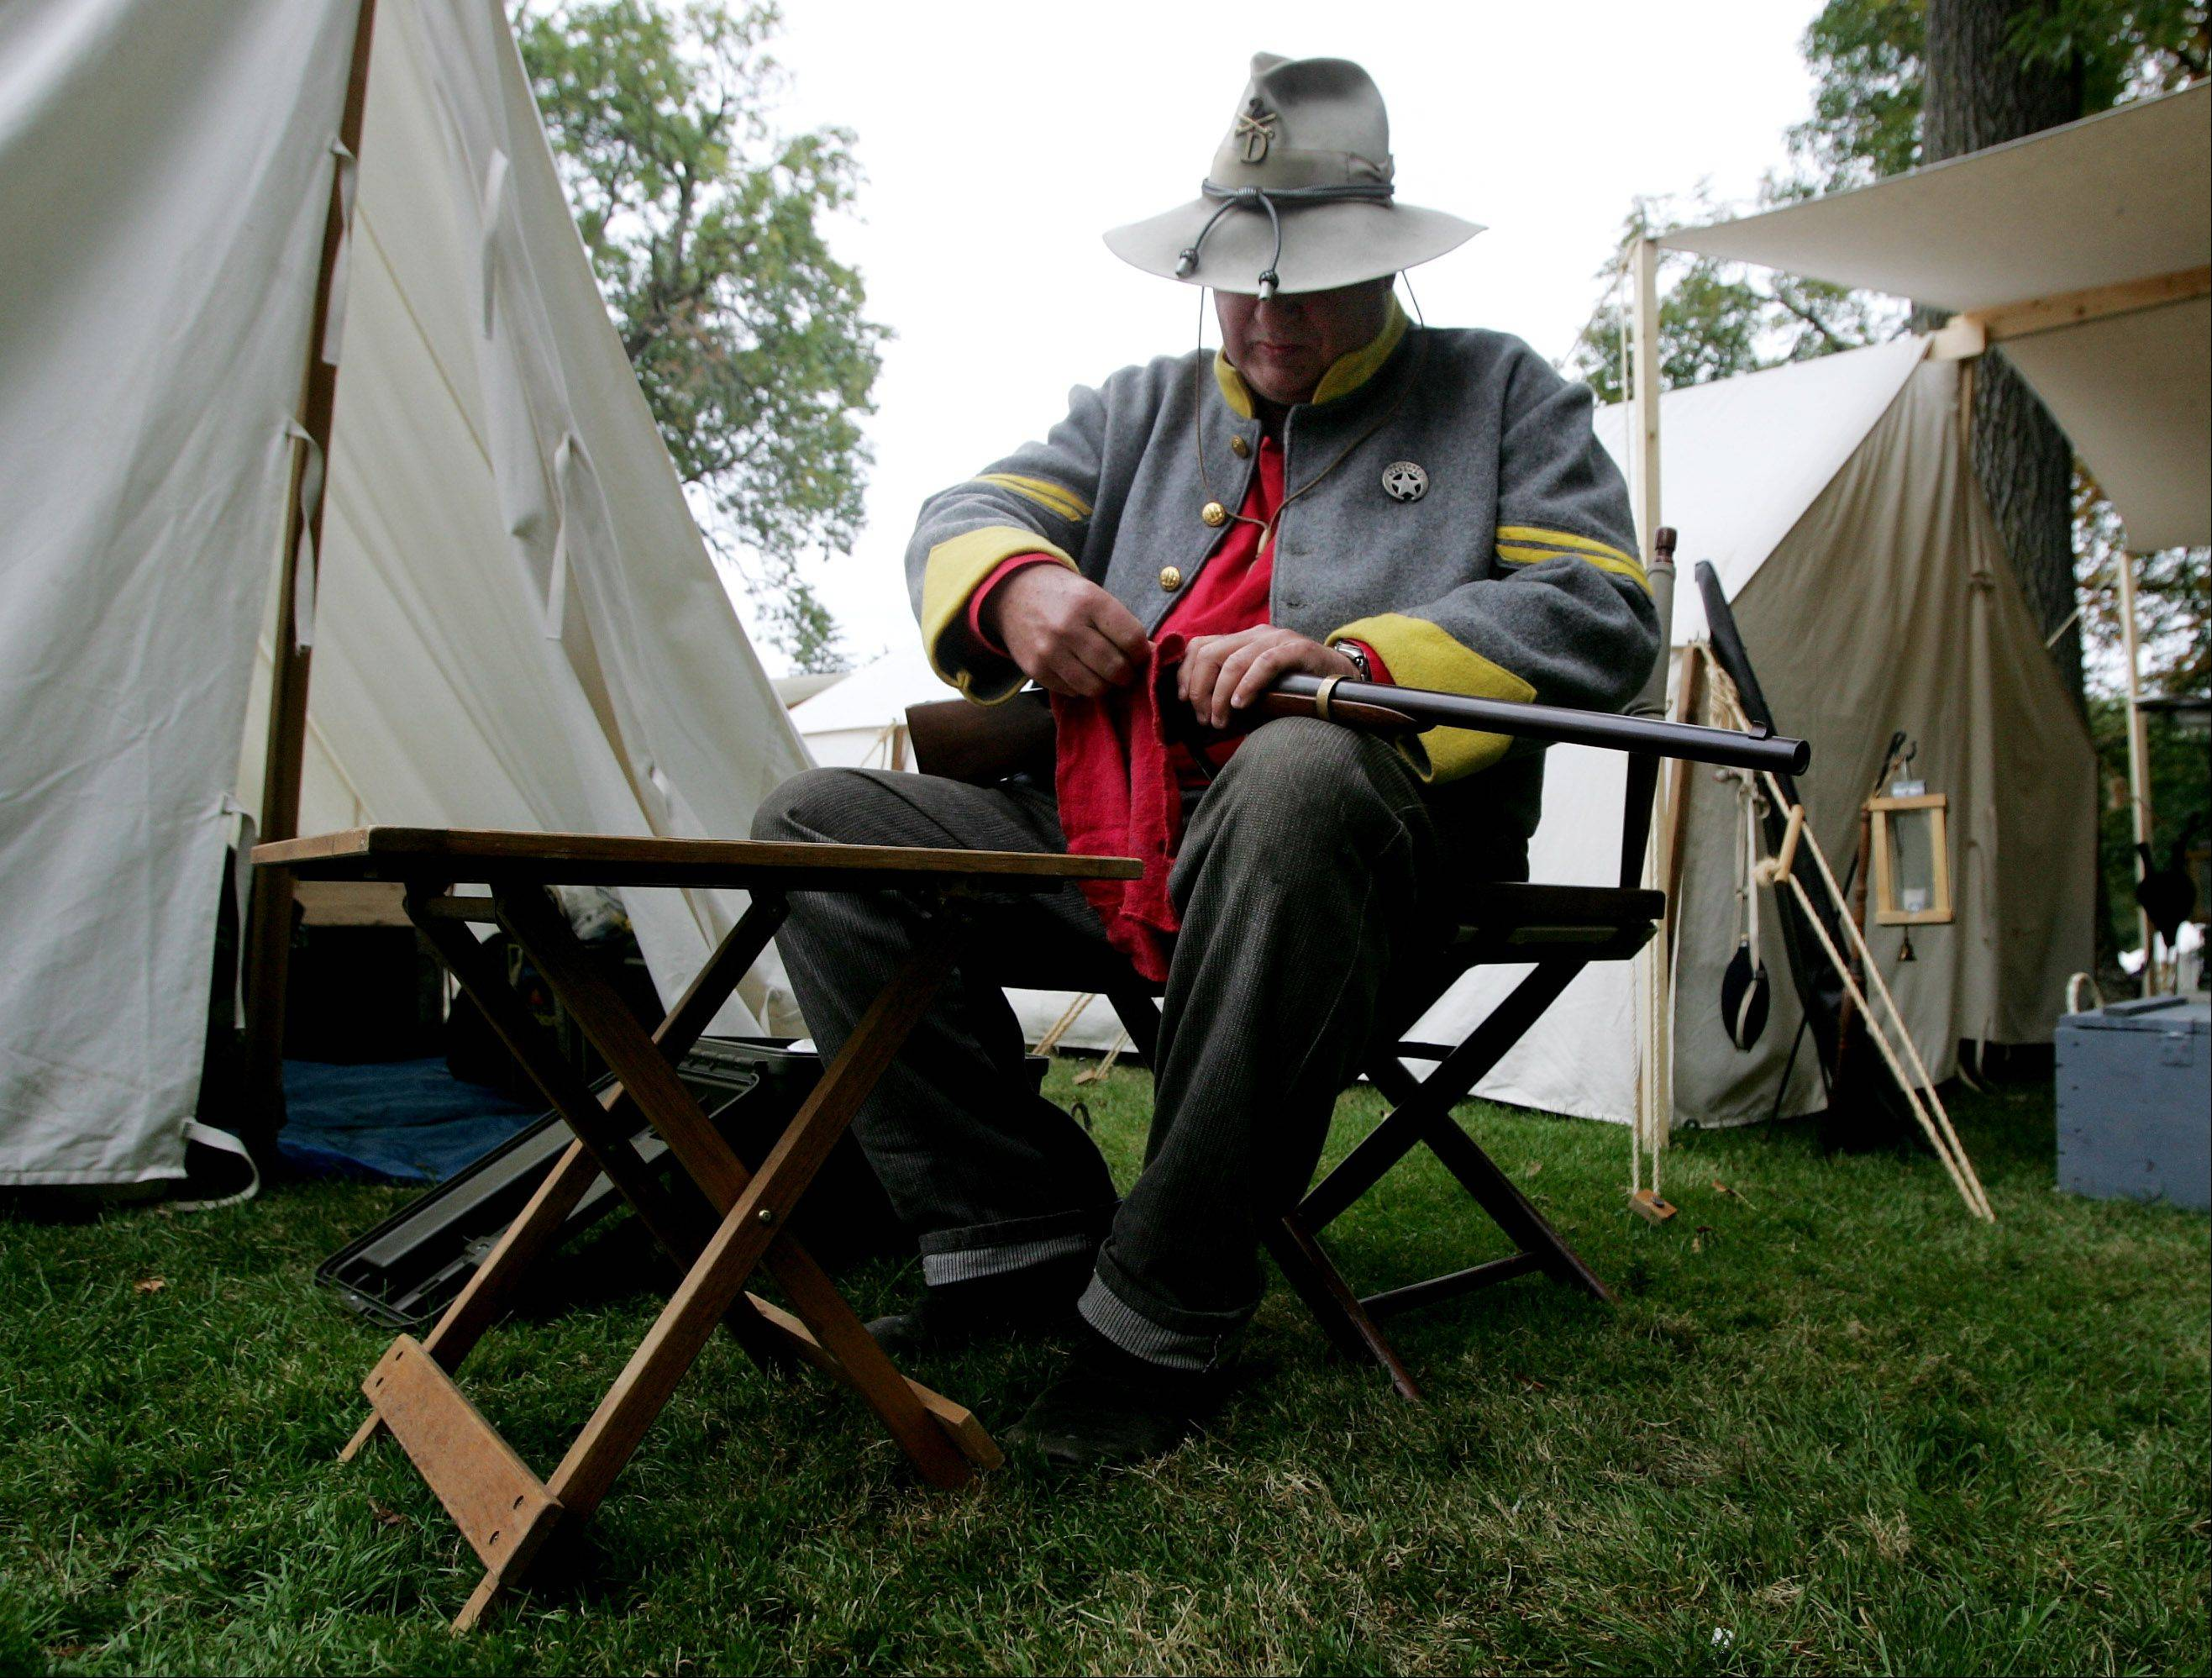 John Downey of Sussex, Wisconsin cleans a Sharp's rifle during last year's Annual Lake Villa Civil War Days Sunday at the Lehmann Mansion. Downey was an infantryman with the Confederate 2nd Kentucky Cavalry.